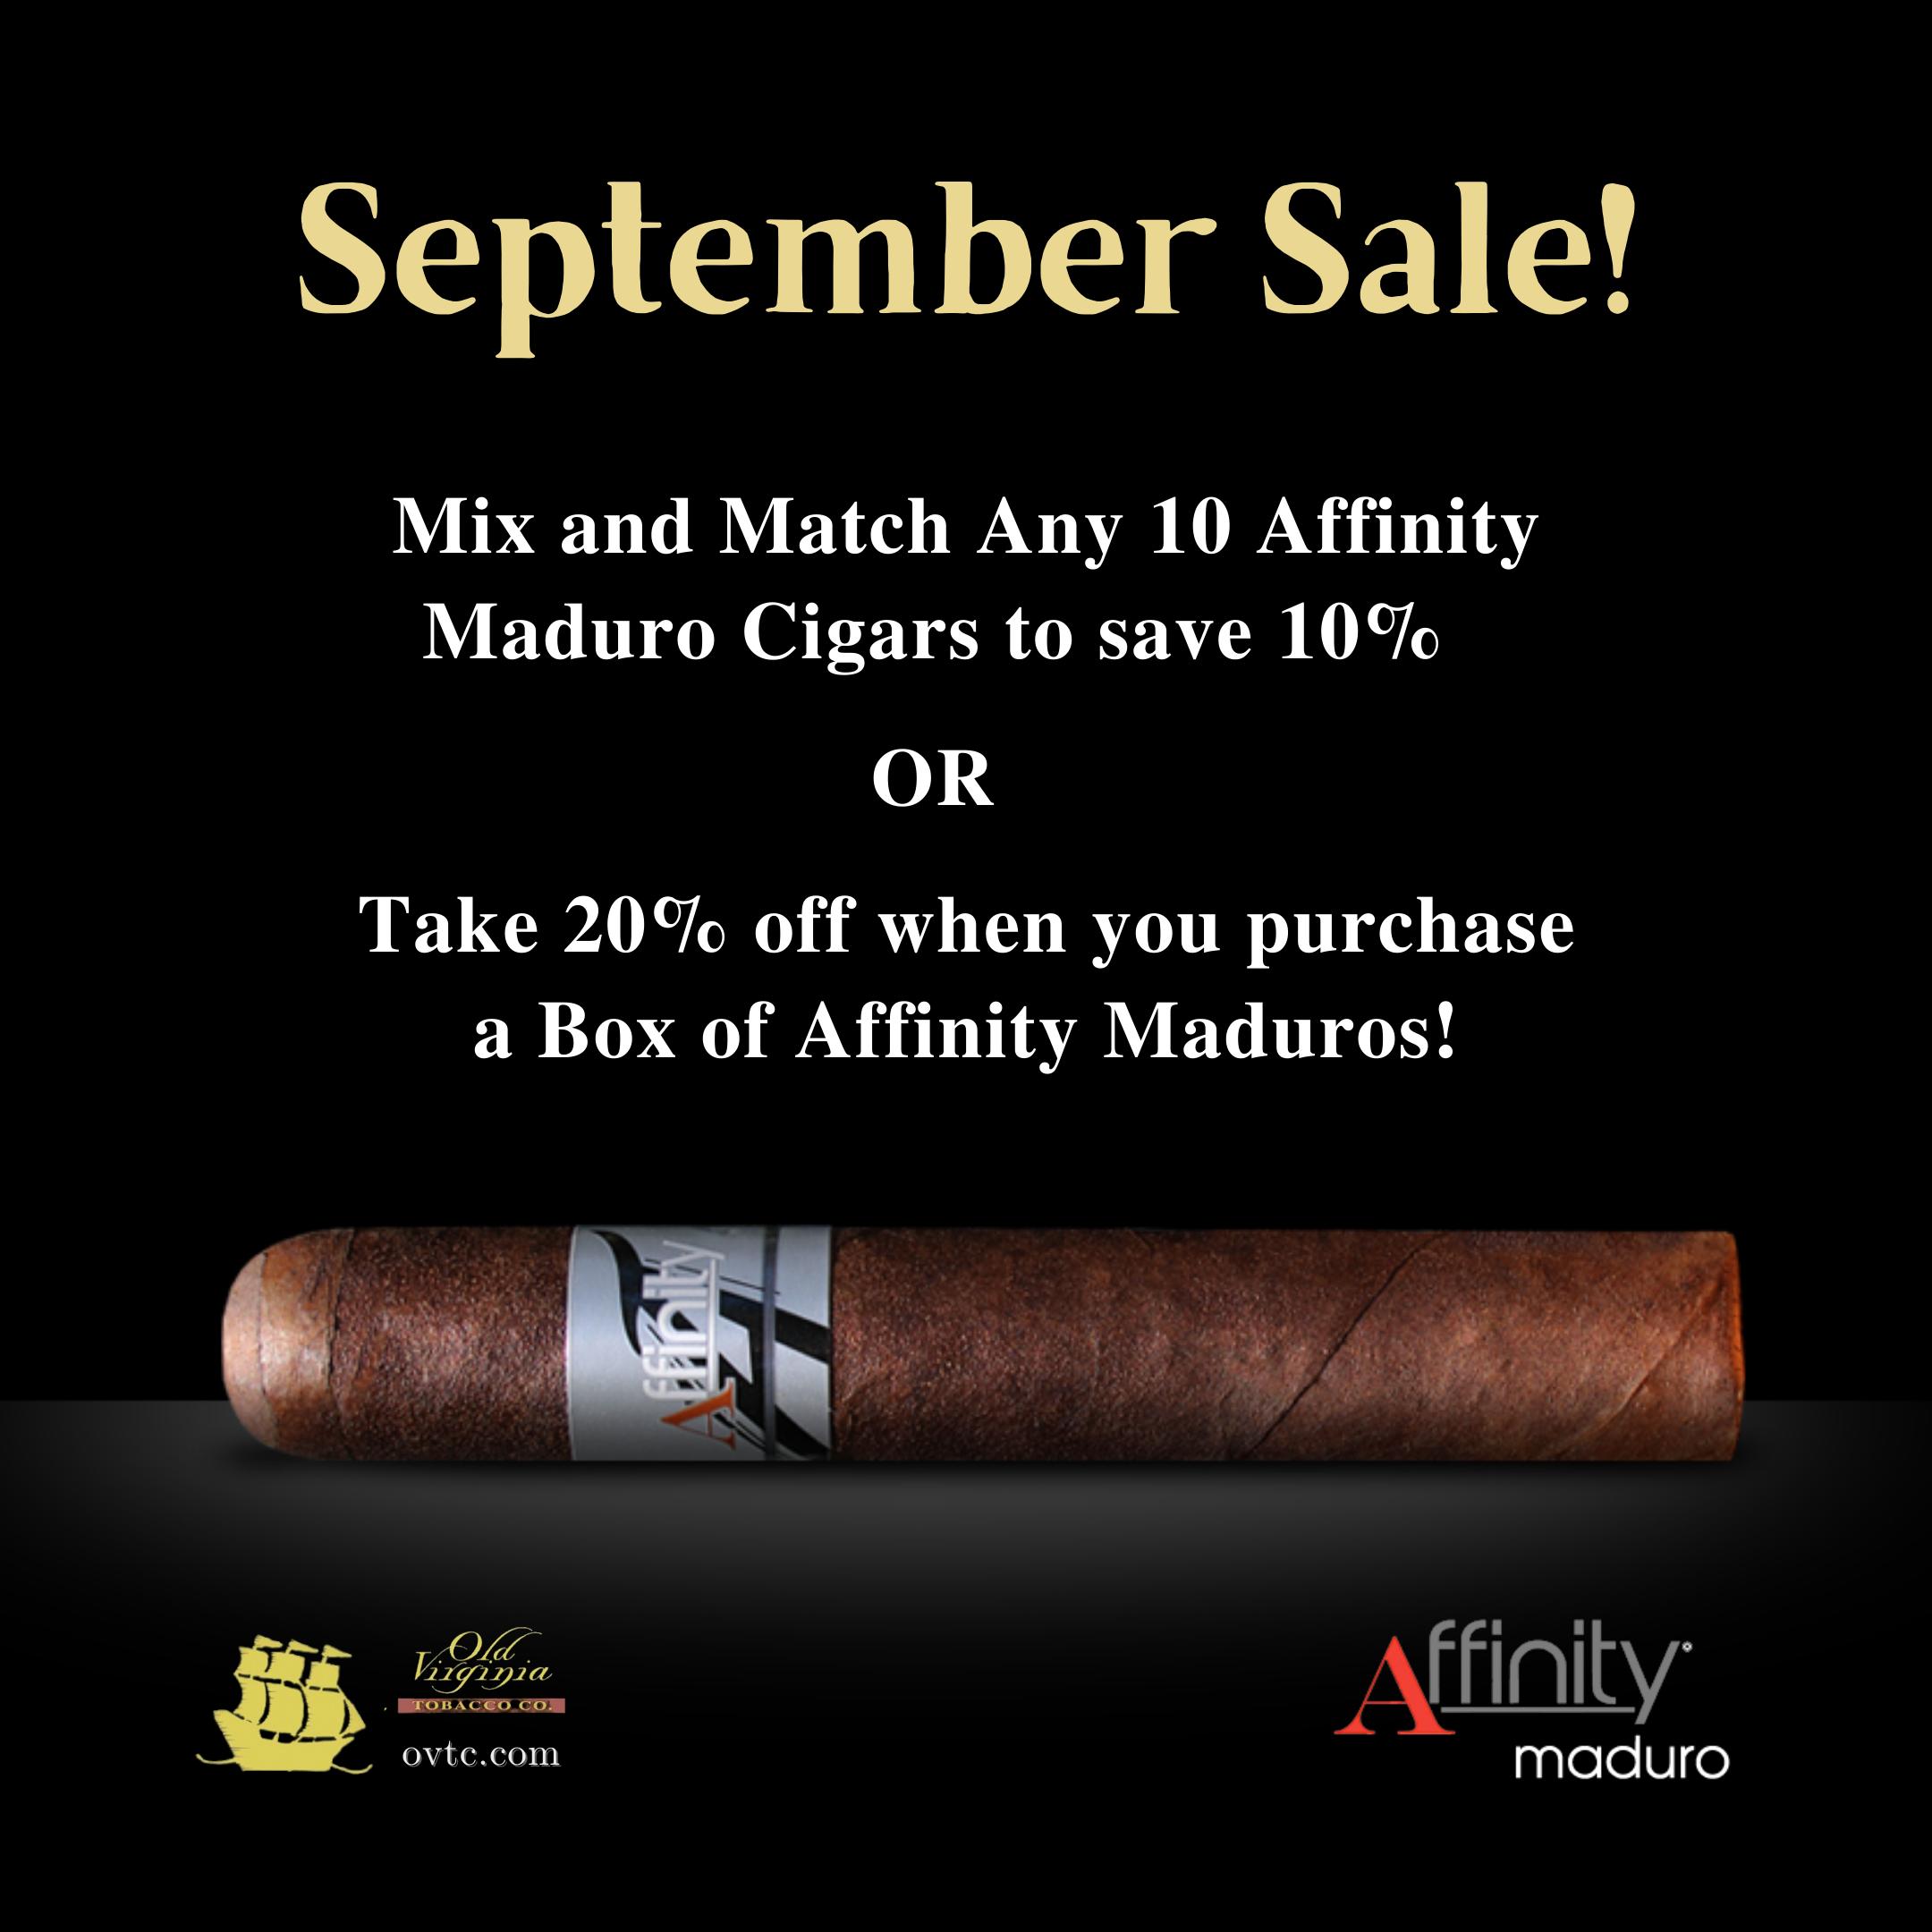 Affinity Maduro September Sales – Mix & Match 10 or Buy a Box!